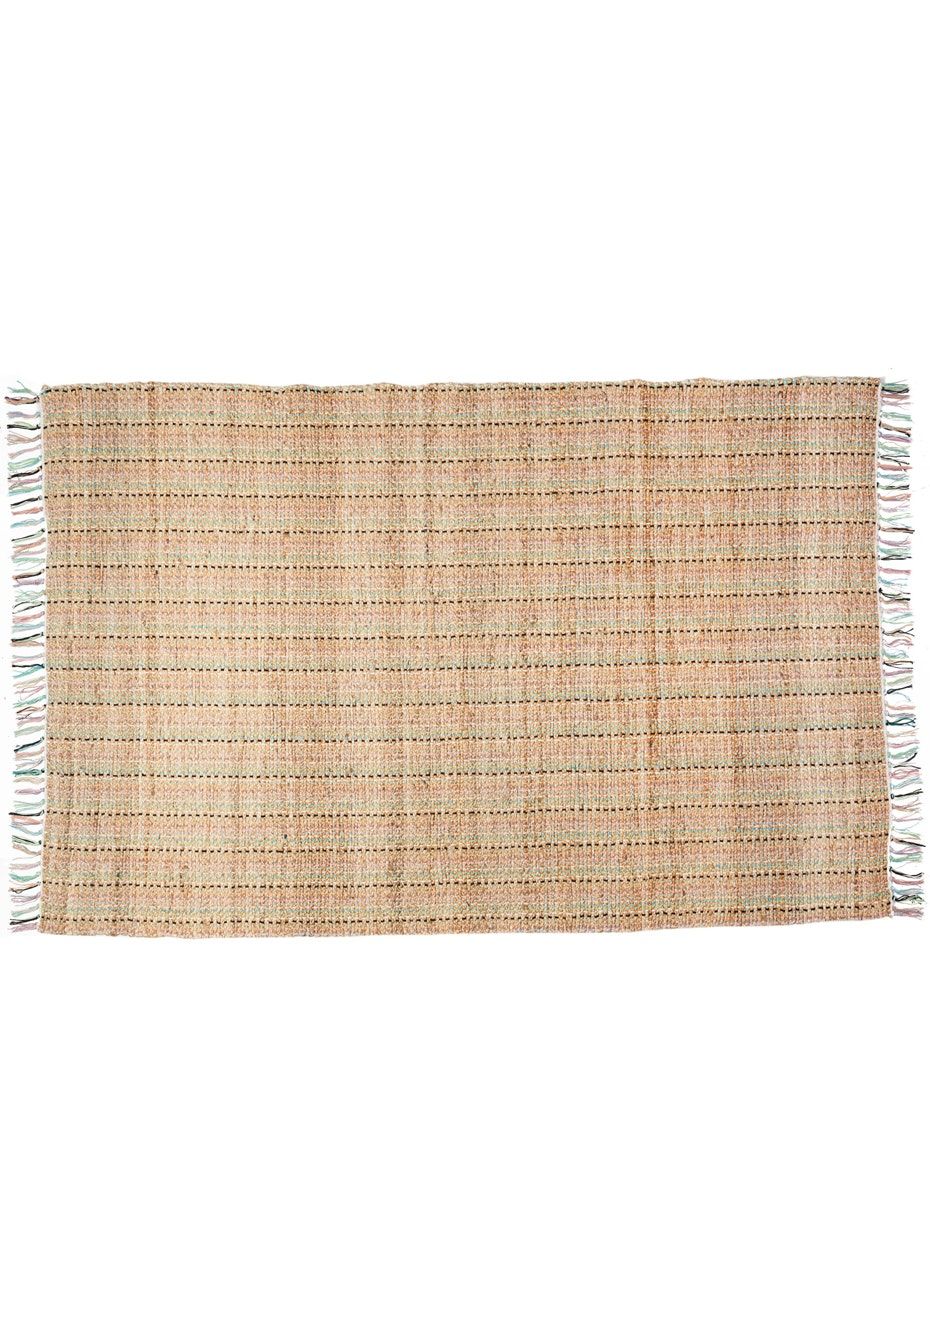 General Eclectic - Hemp Pastel Braided Rug - Small